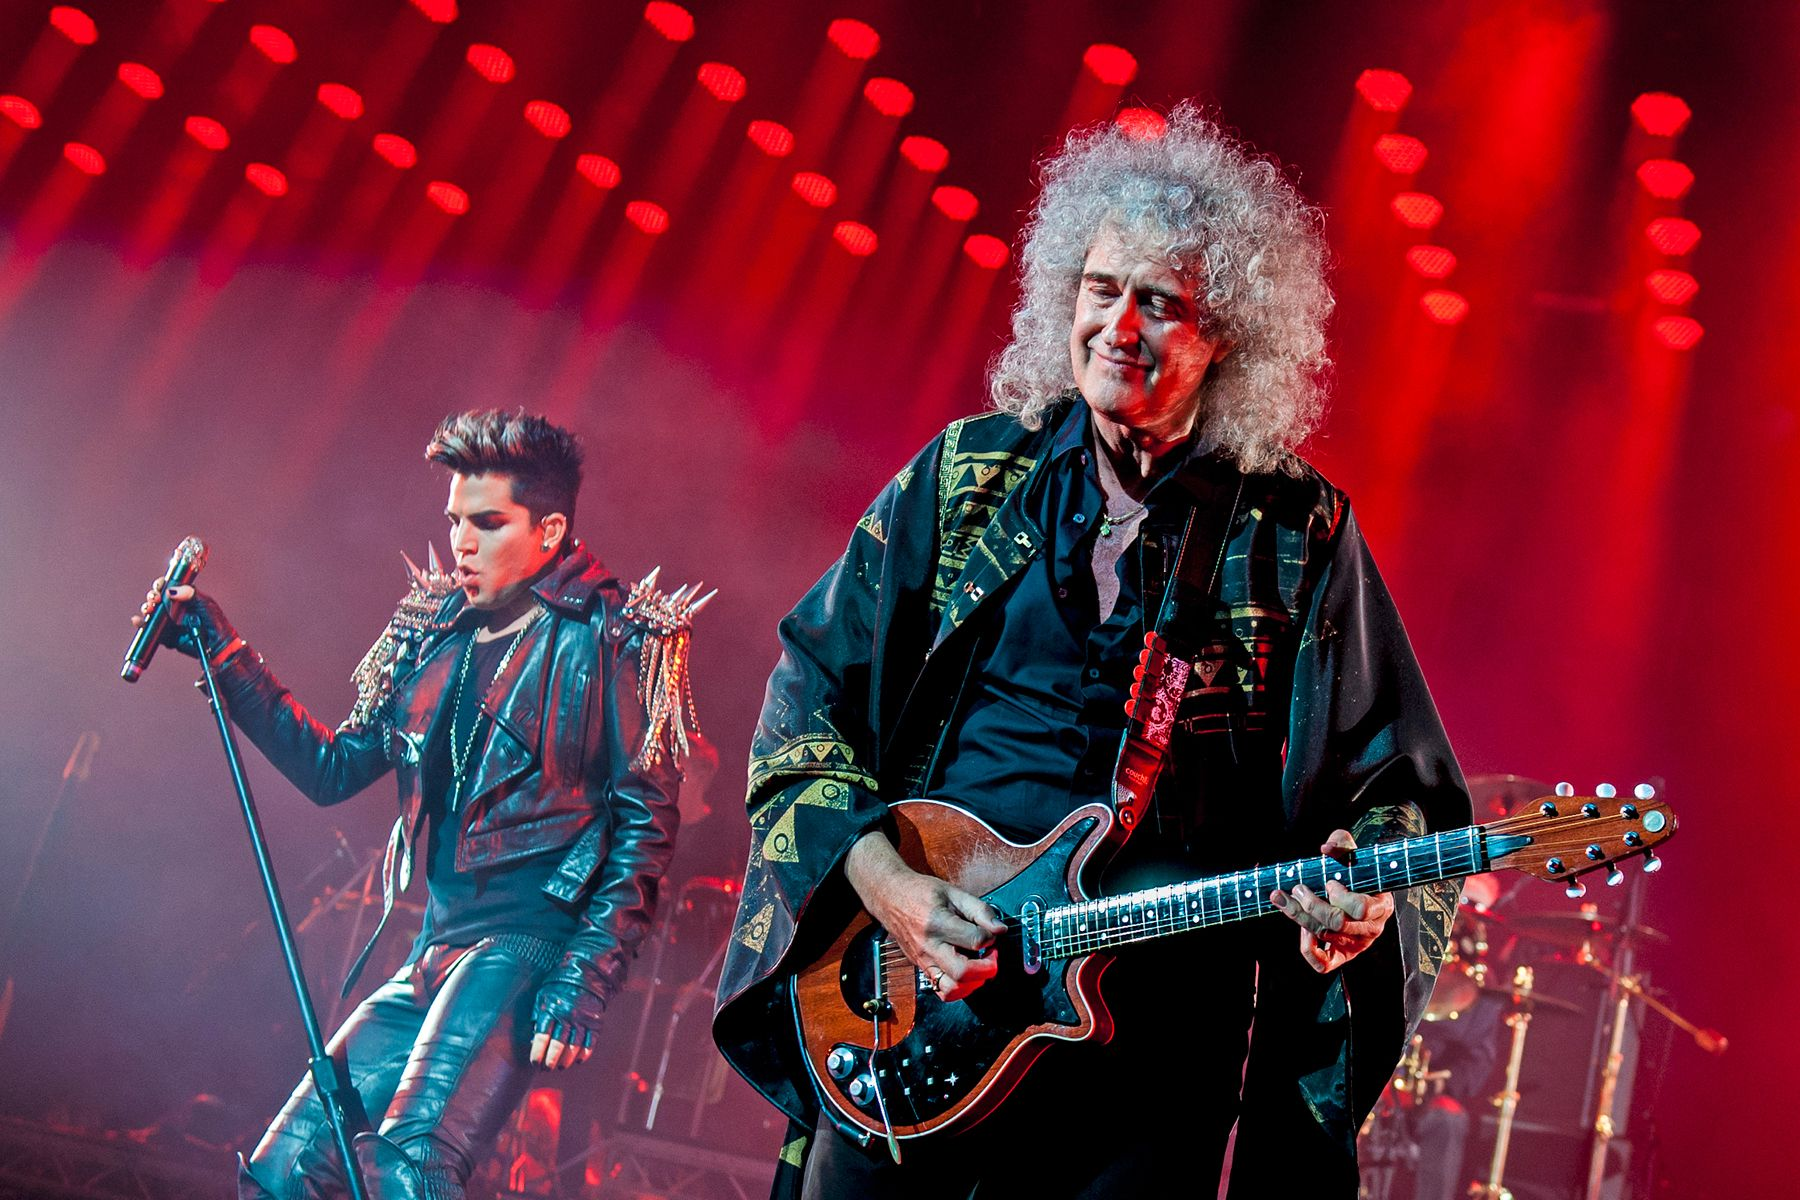 Adam Lambert w/Queen London show